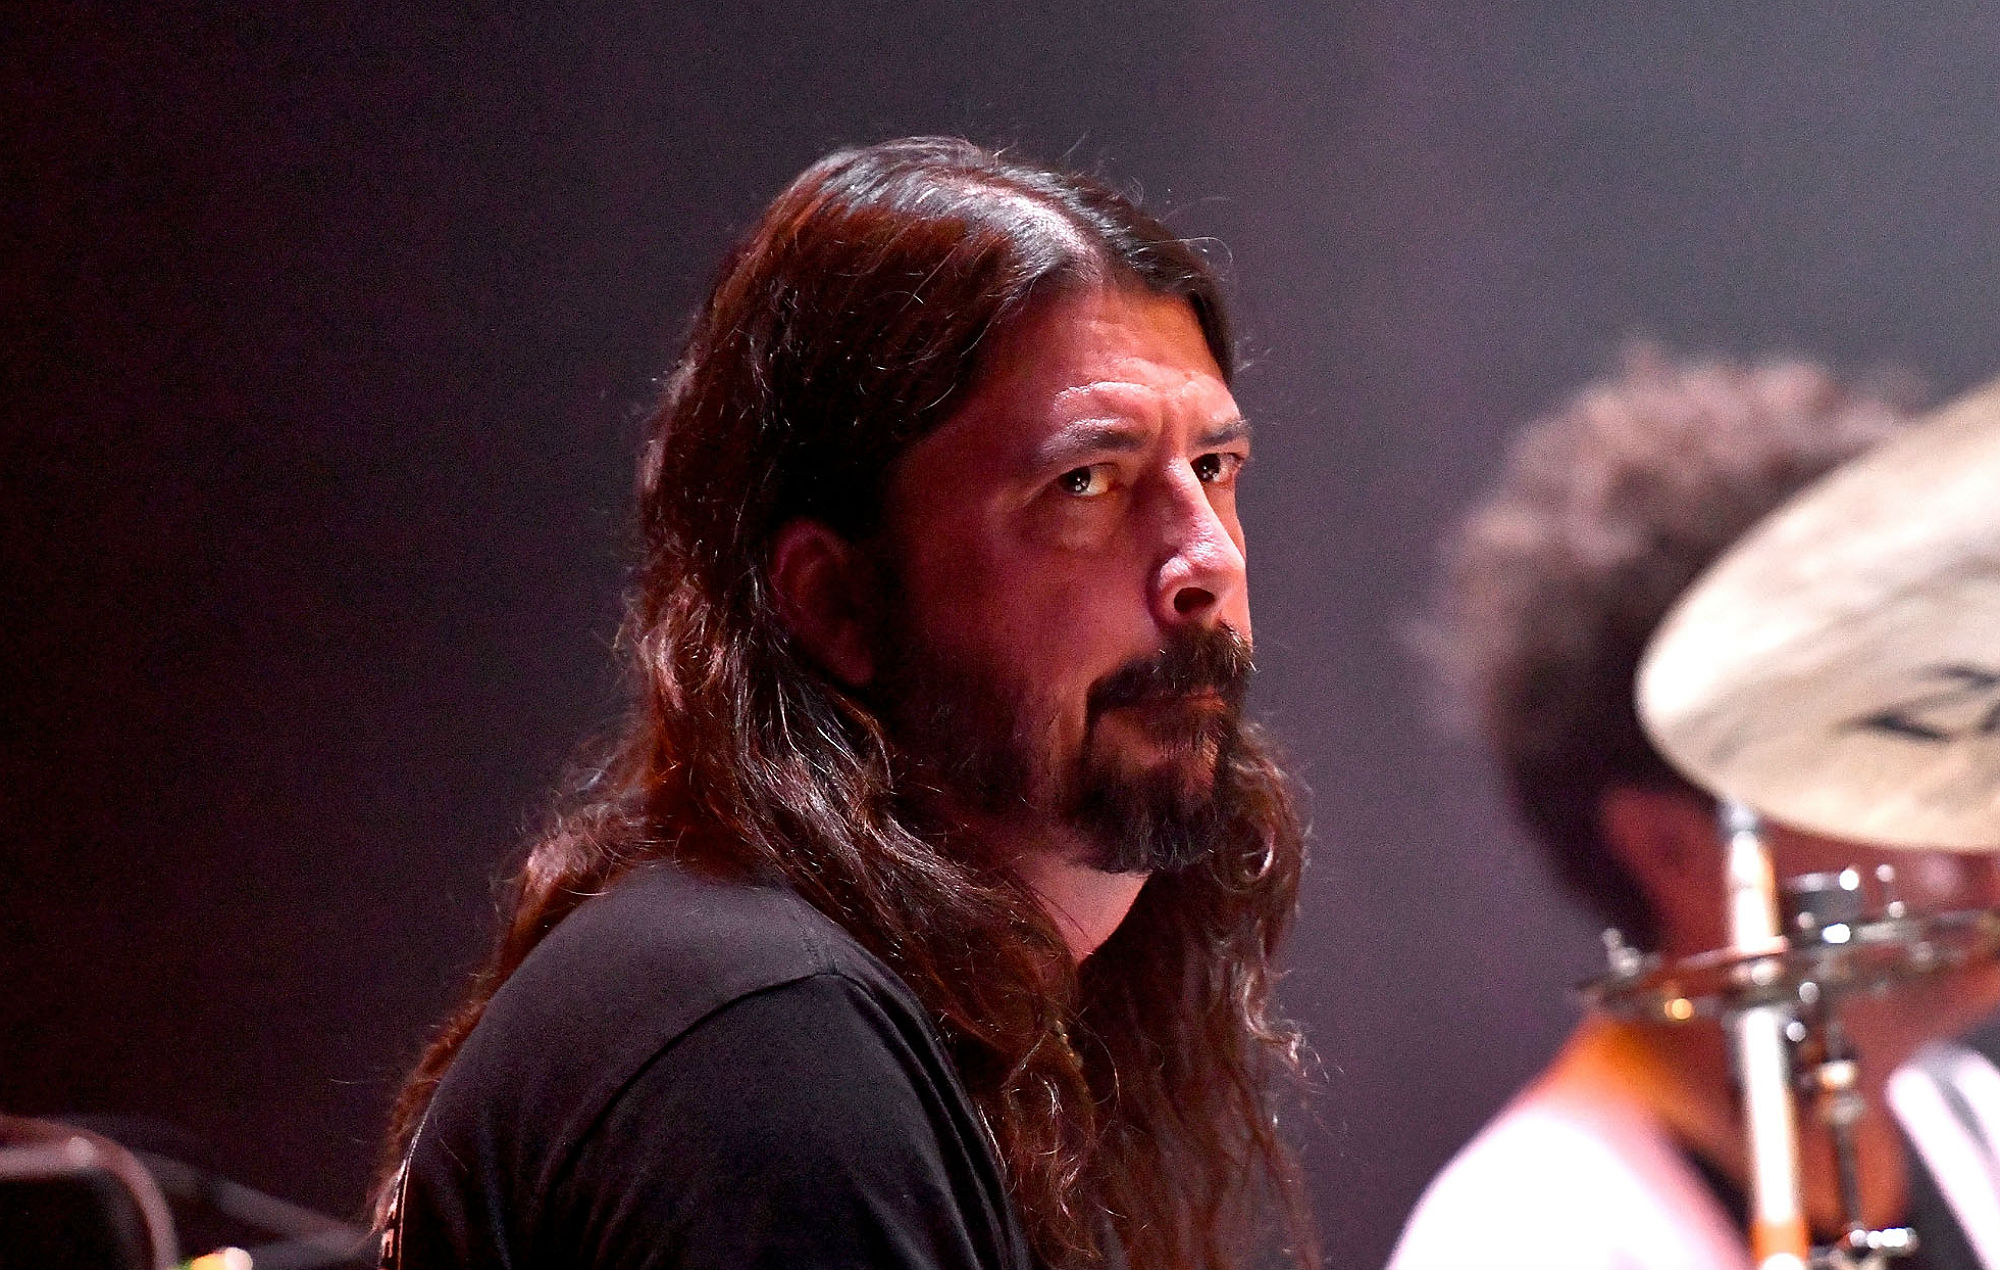 Dave-Grohl-1024x650